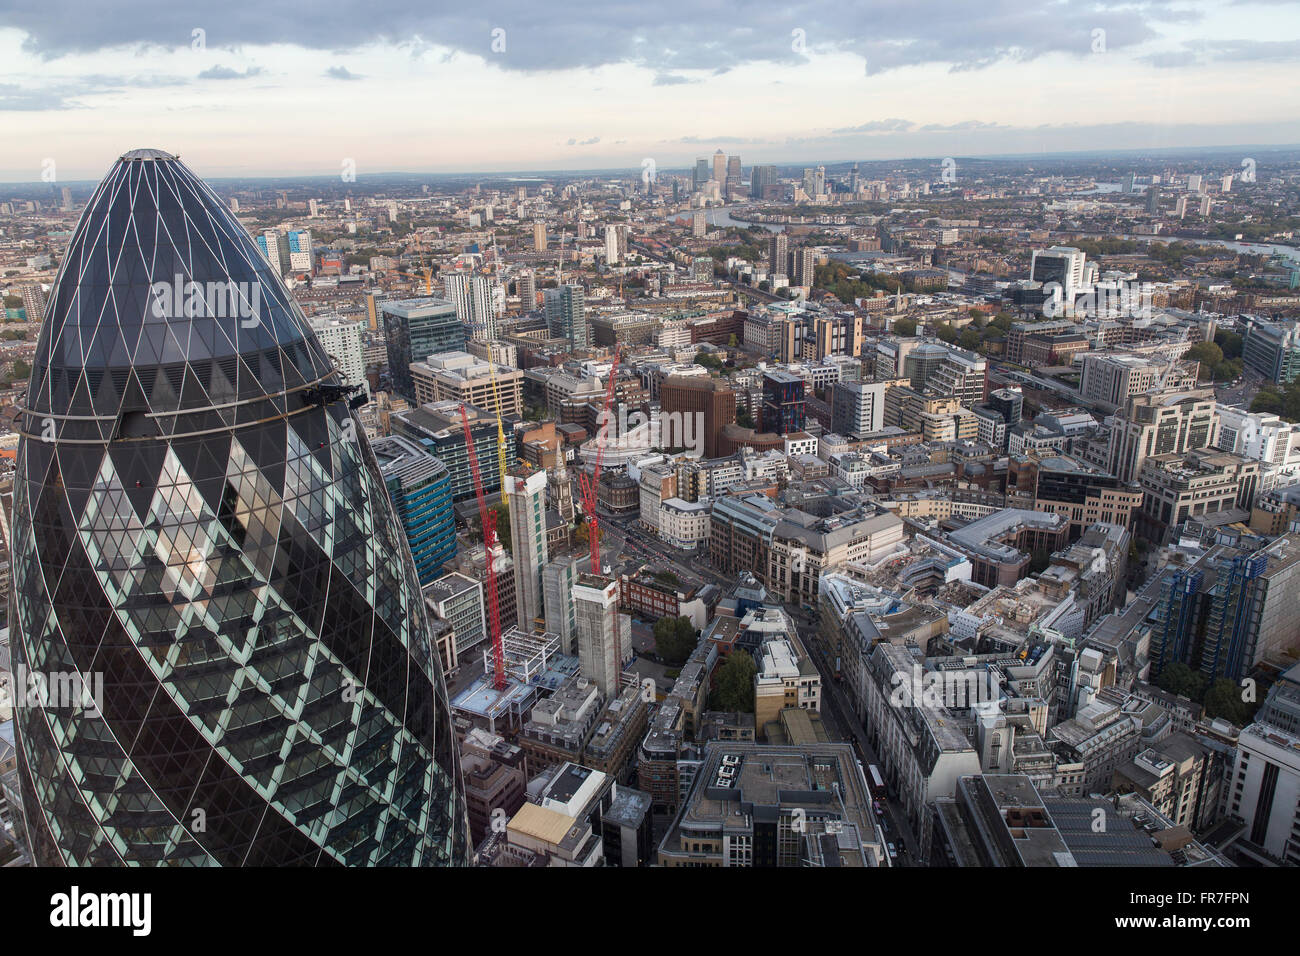 City of London skyline - Stock Image